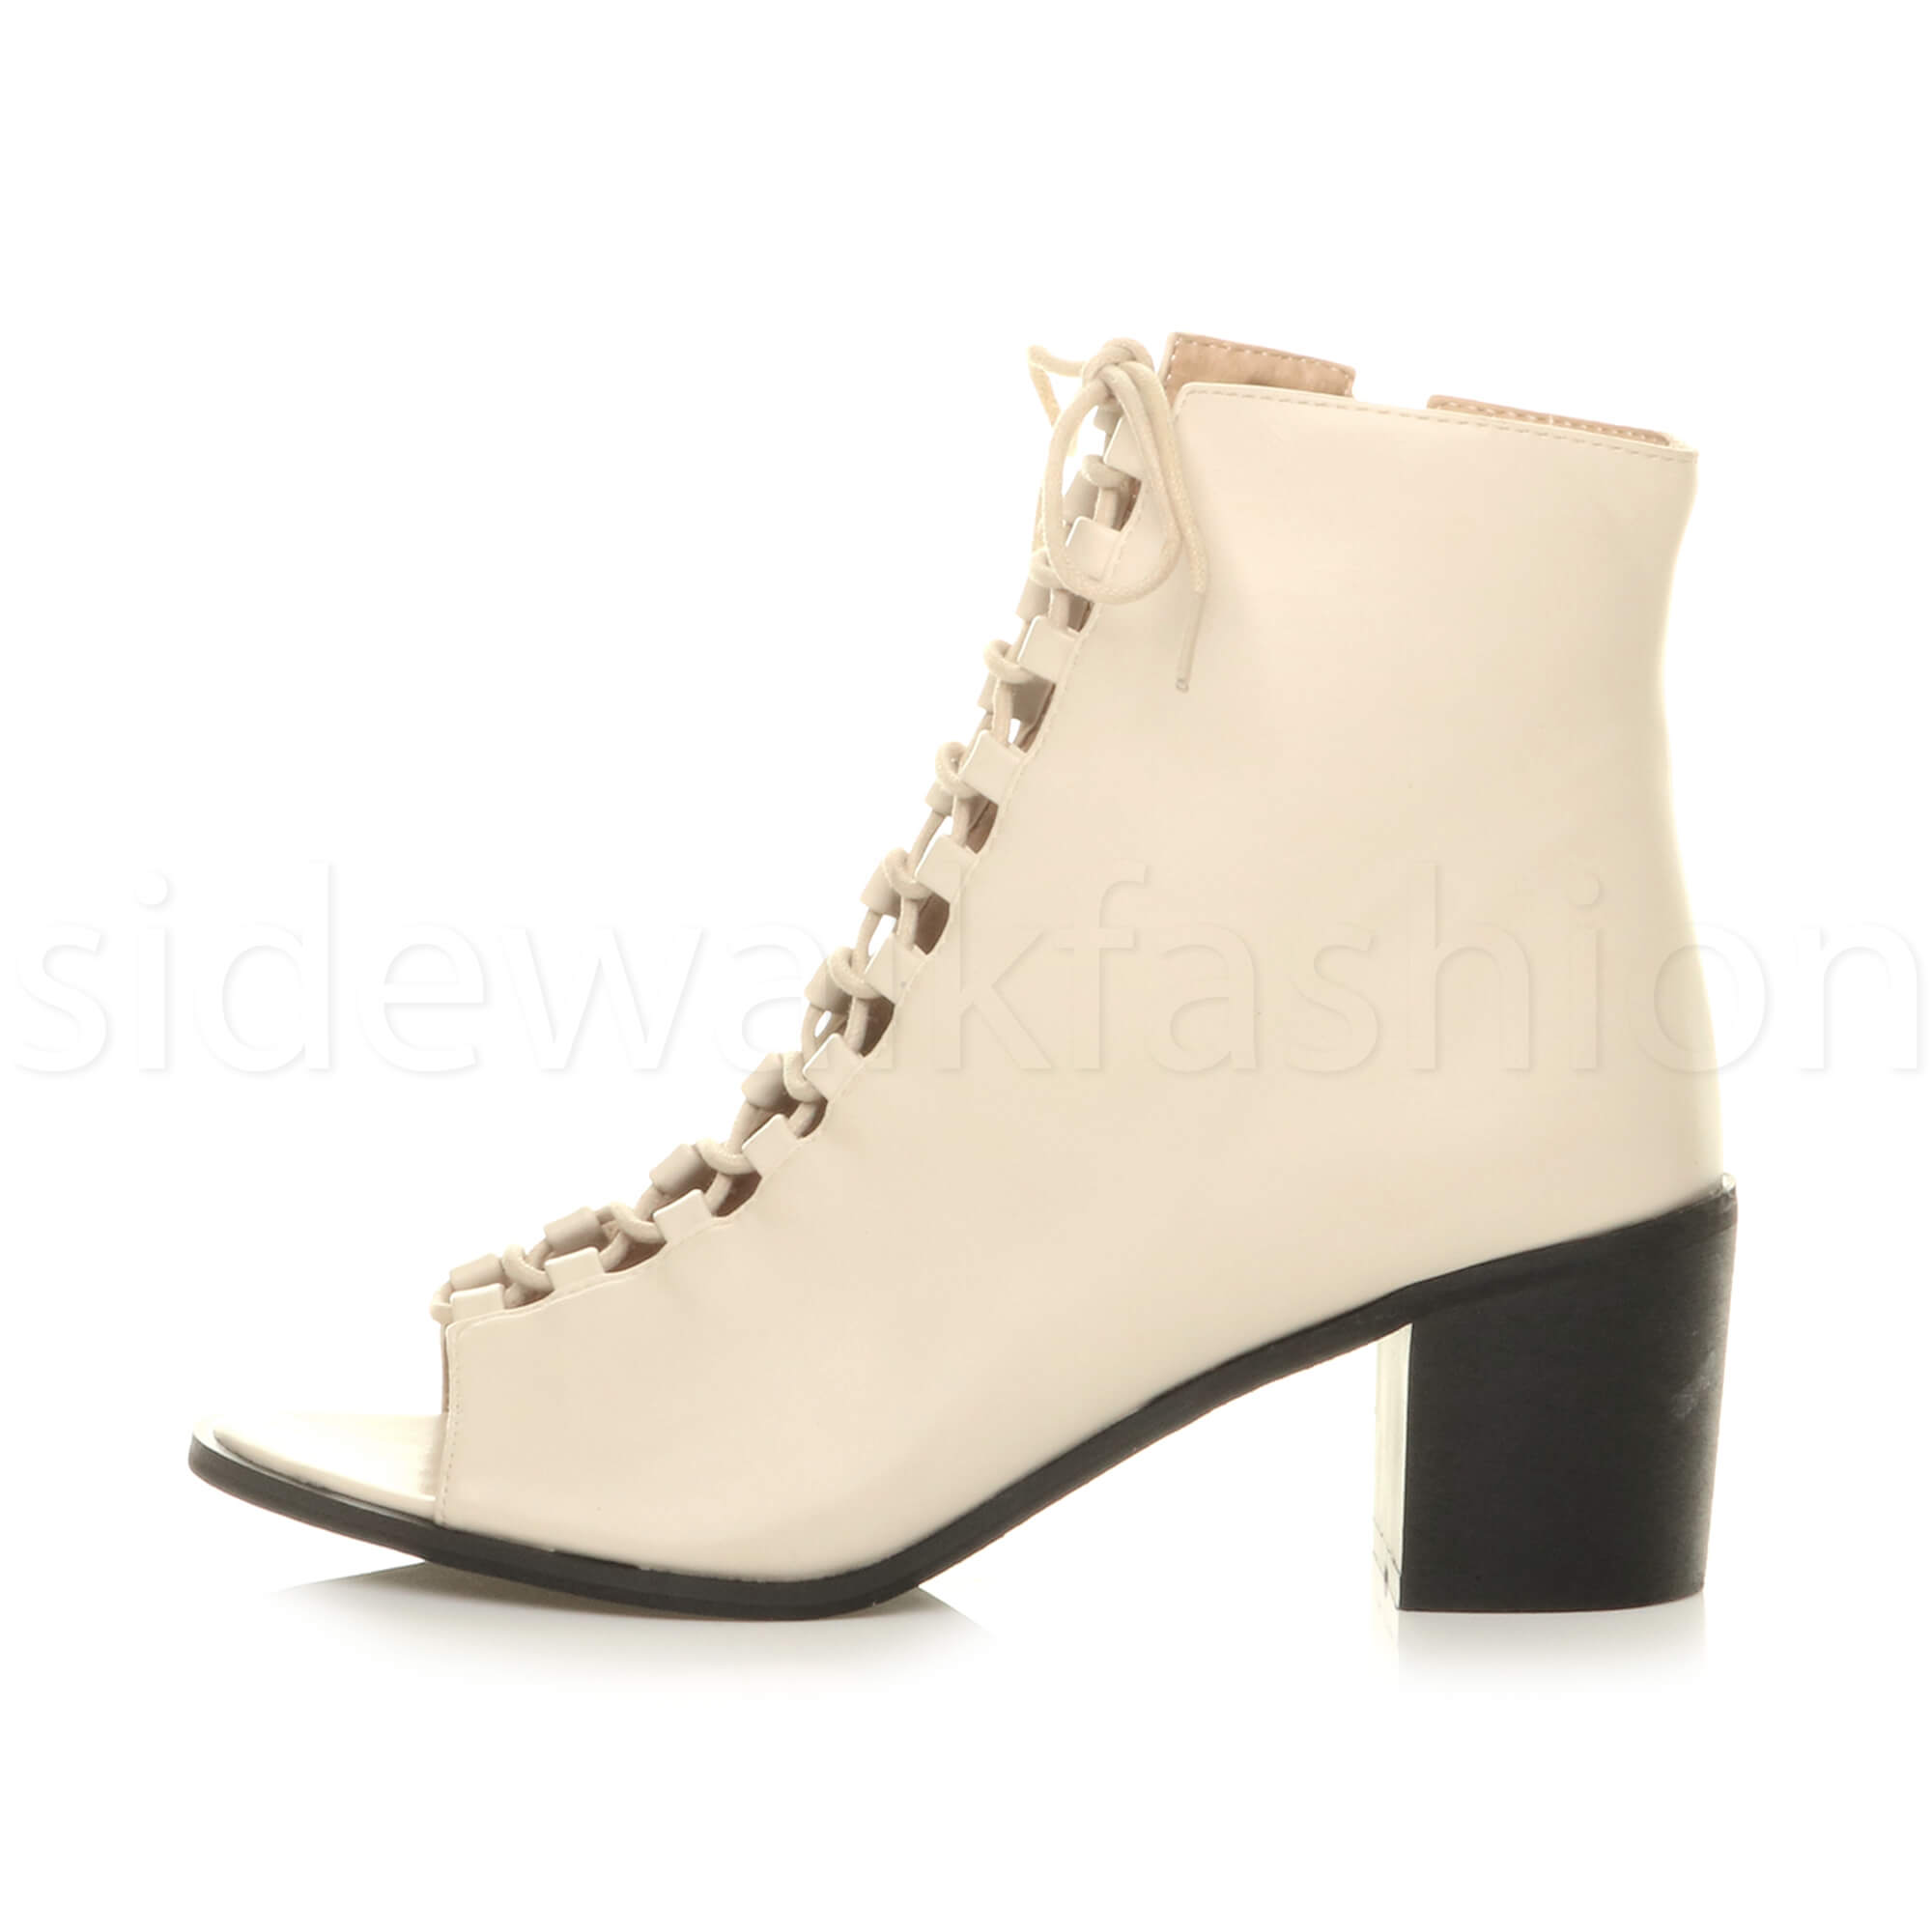 Womens-medium-heel-ladies-ghillie-lace-up-peep-toe-shoe-ankle-boots-sandals-size